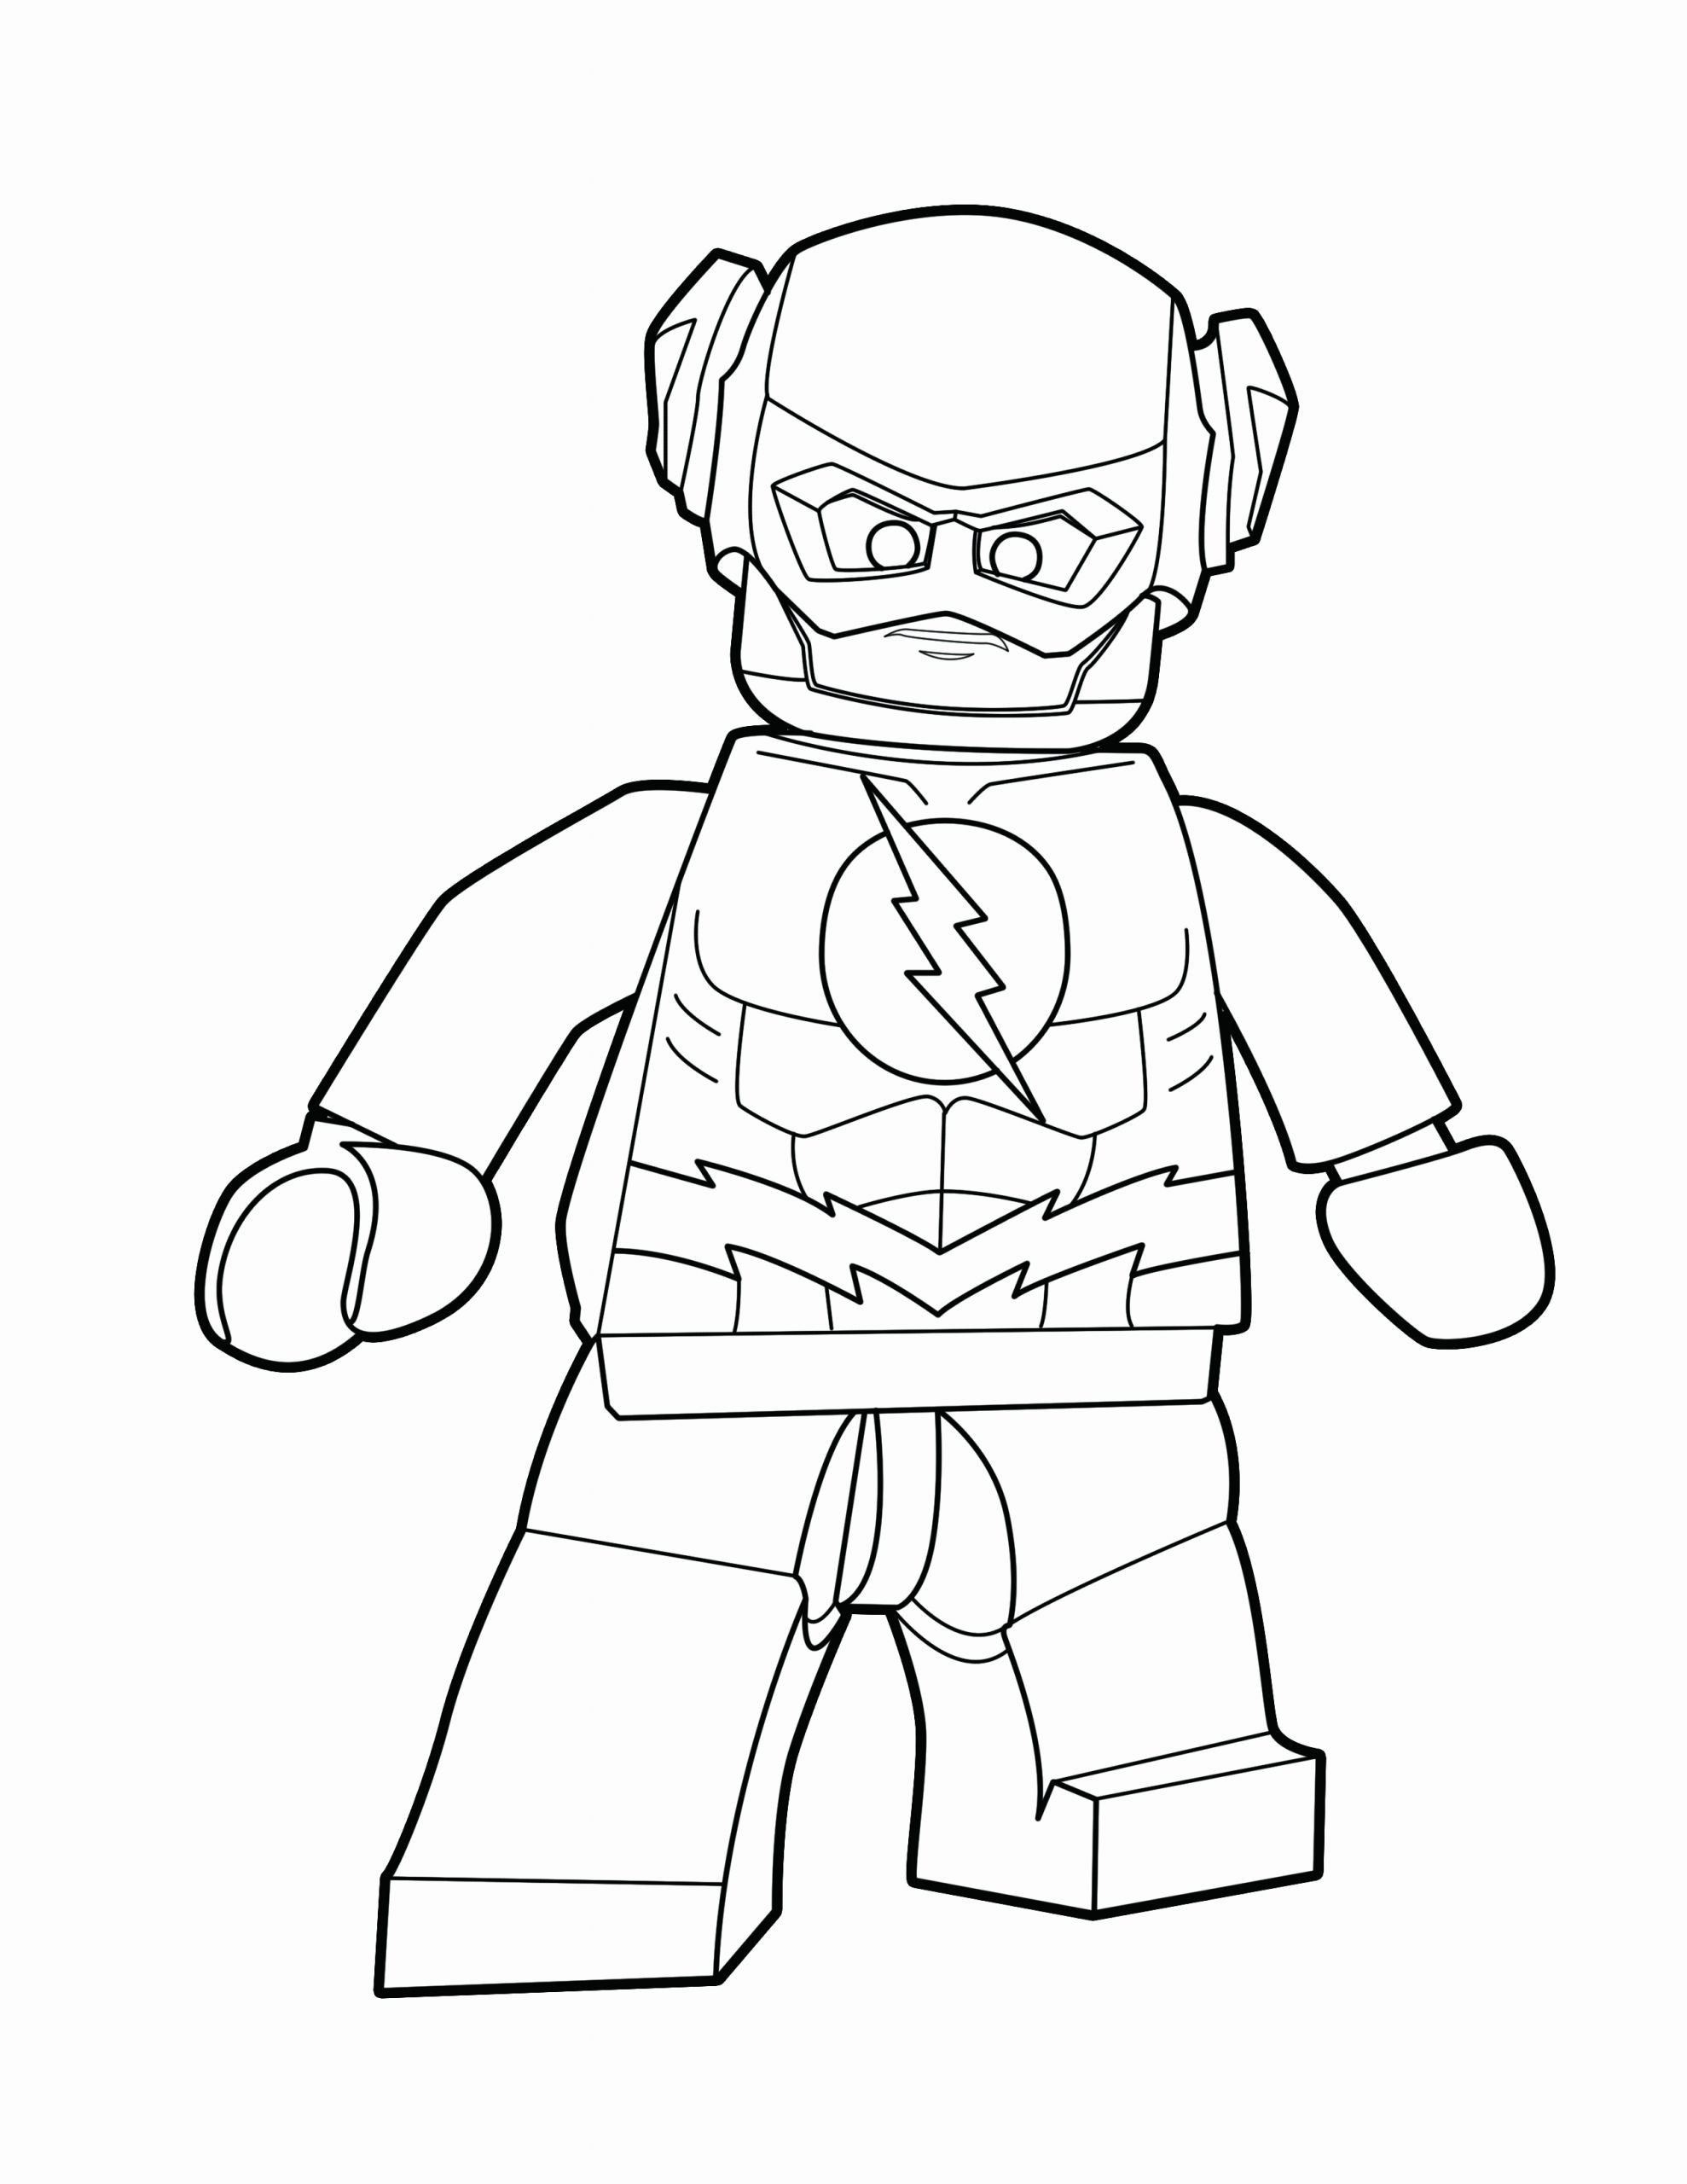 21 The Flash Coloring Book In 2020 Lego Coloring Pages